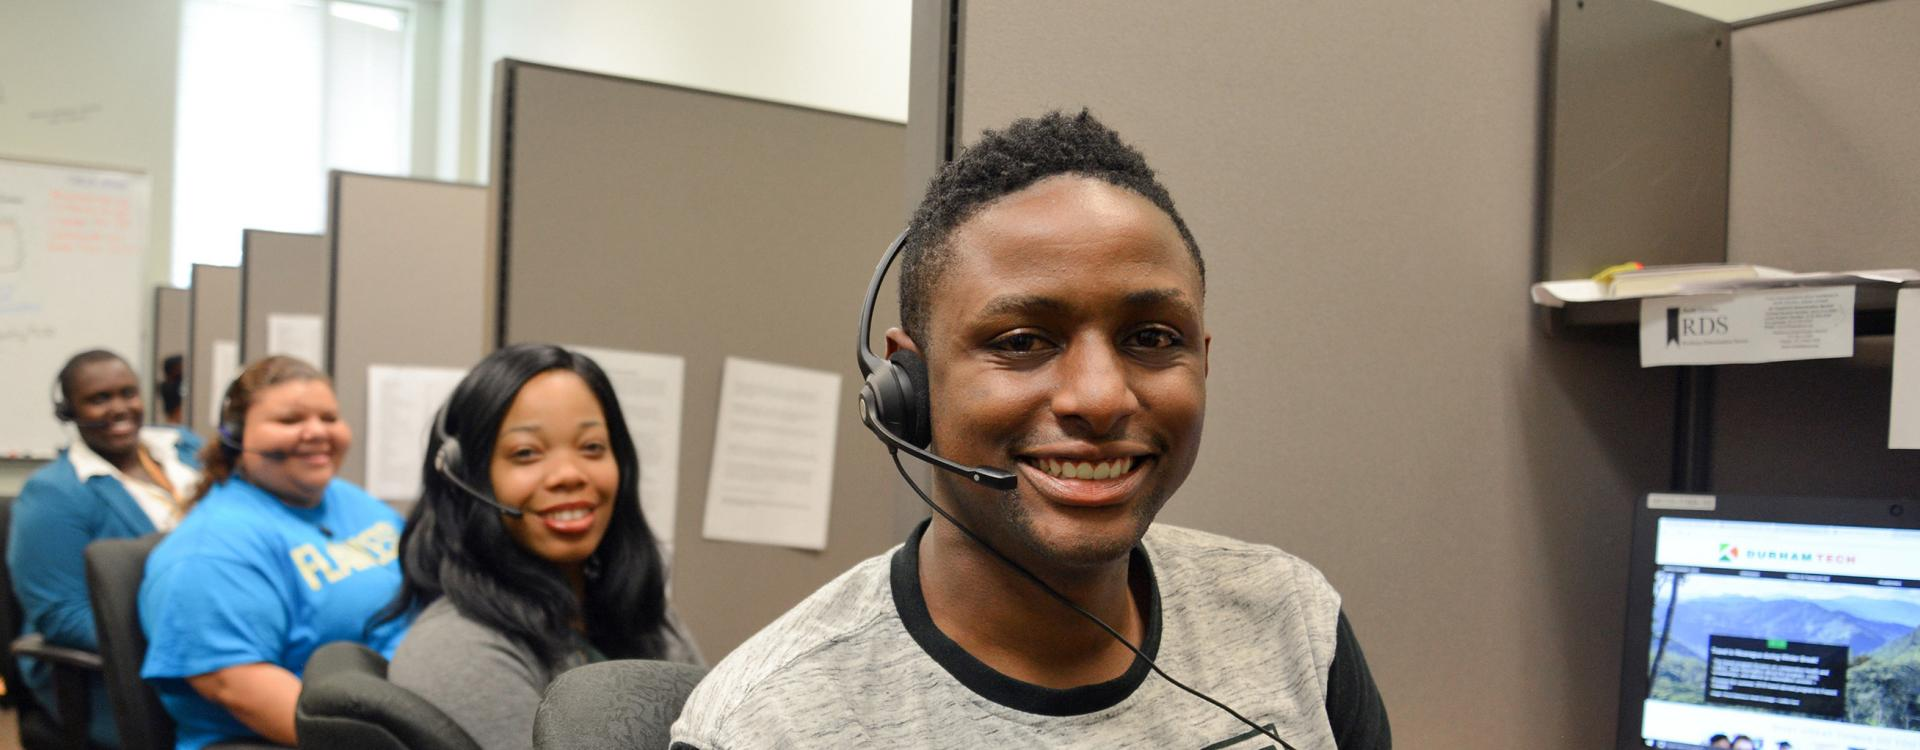 Student Communication Assistants facing camera wearing headphones to answer calls